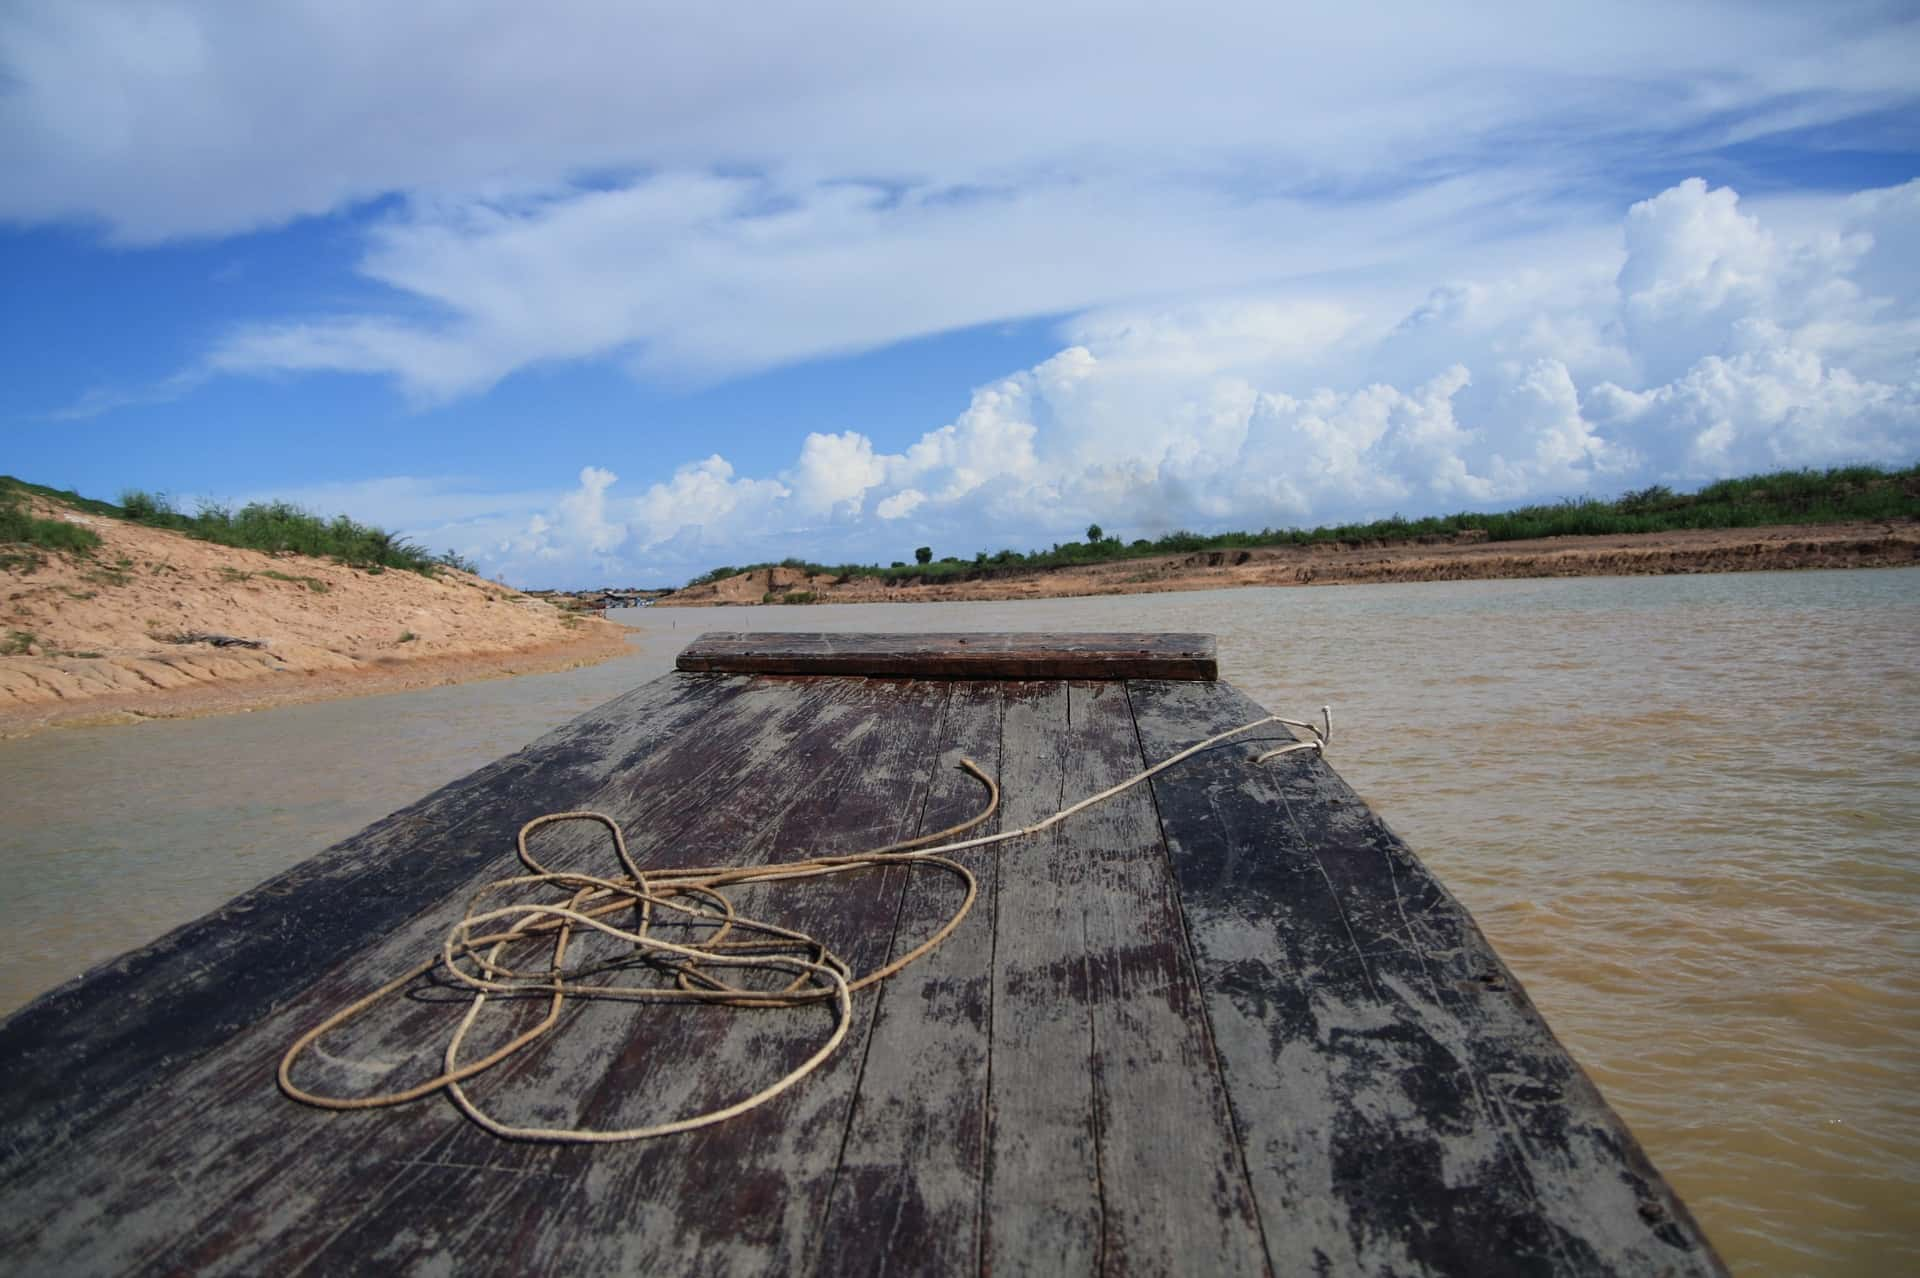 old wooden raft on a river in Cambodia